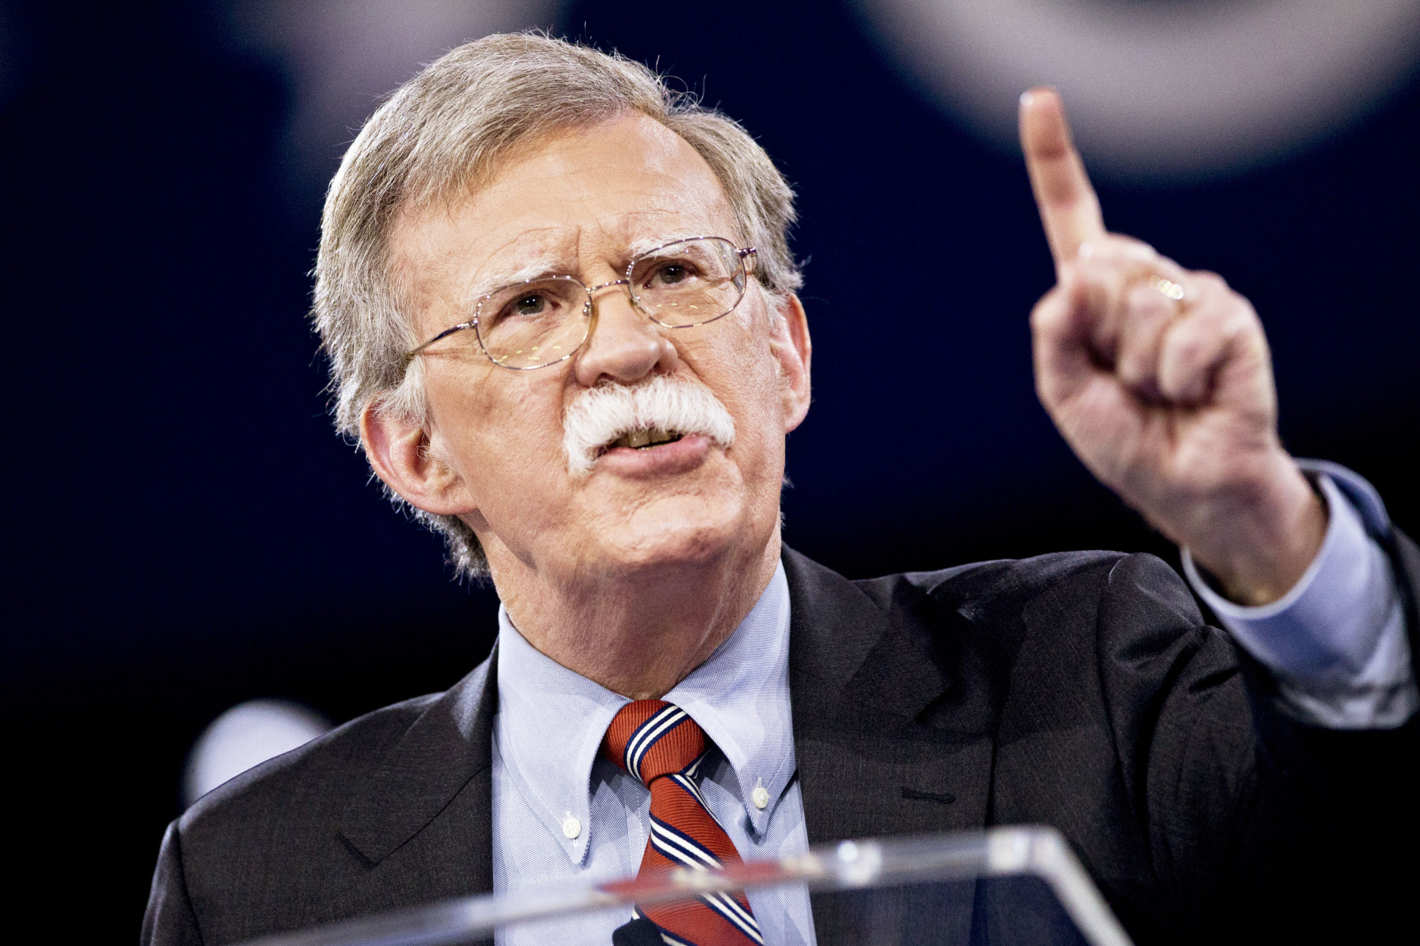 John Bolton and the Anti-Muslim Bigotry of Mainstream Conservatism